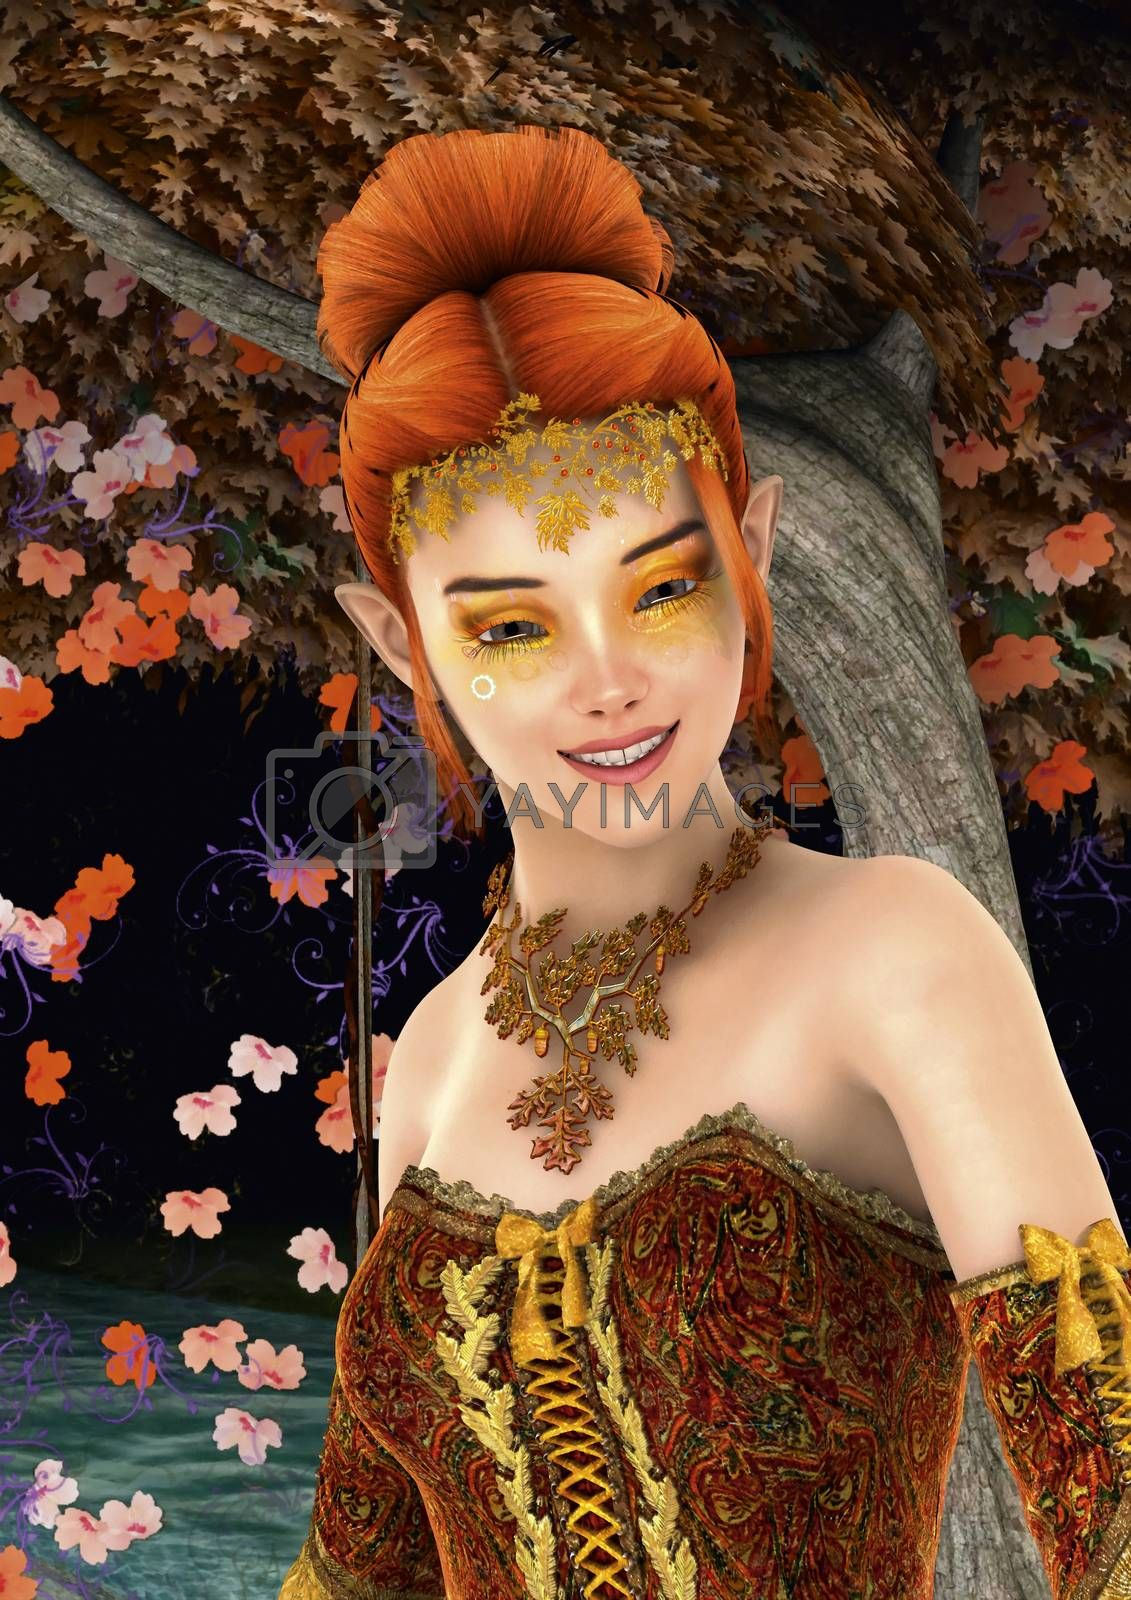 3D digital render of a beautiful princess of autumn ona fantasy garden background